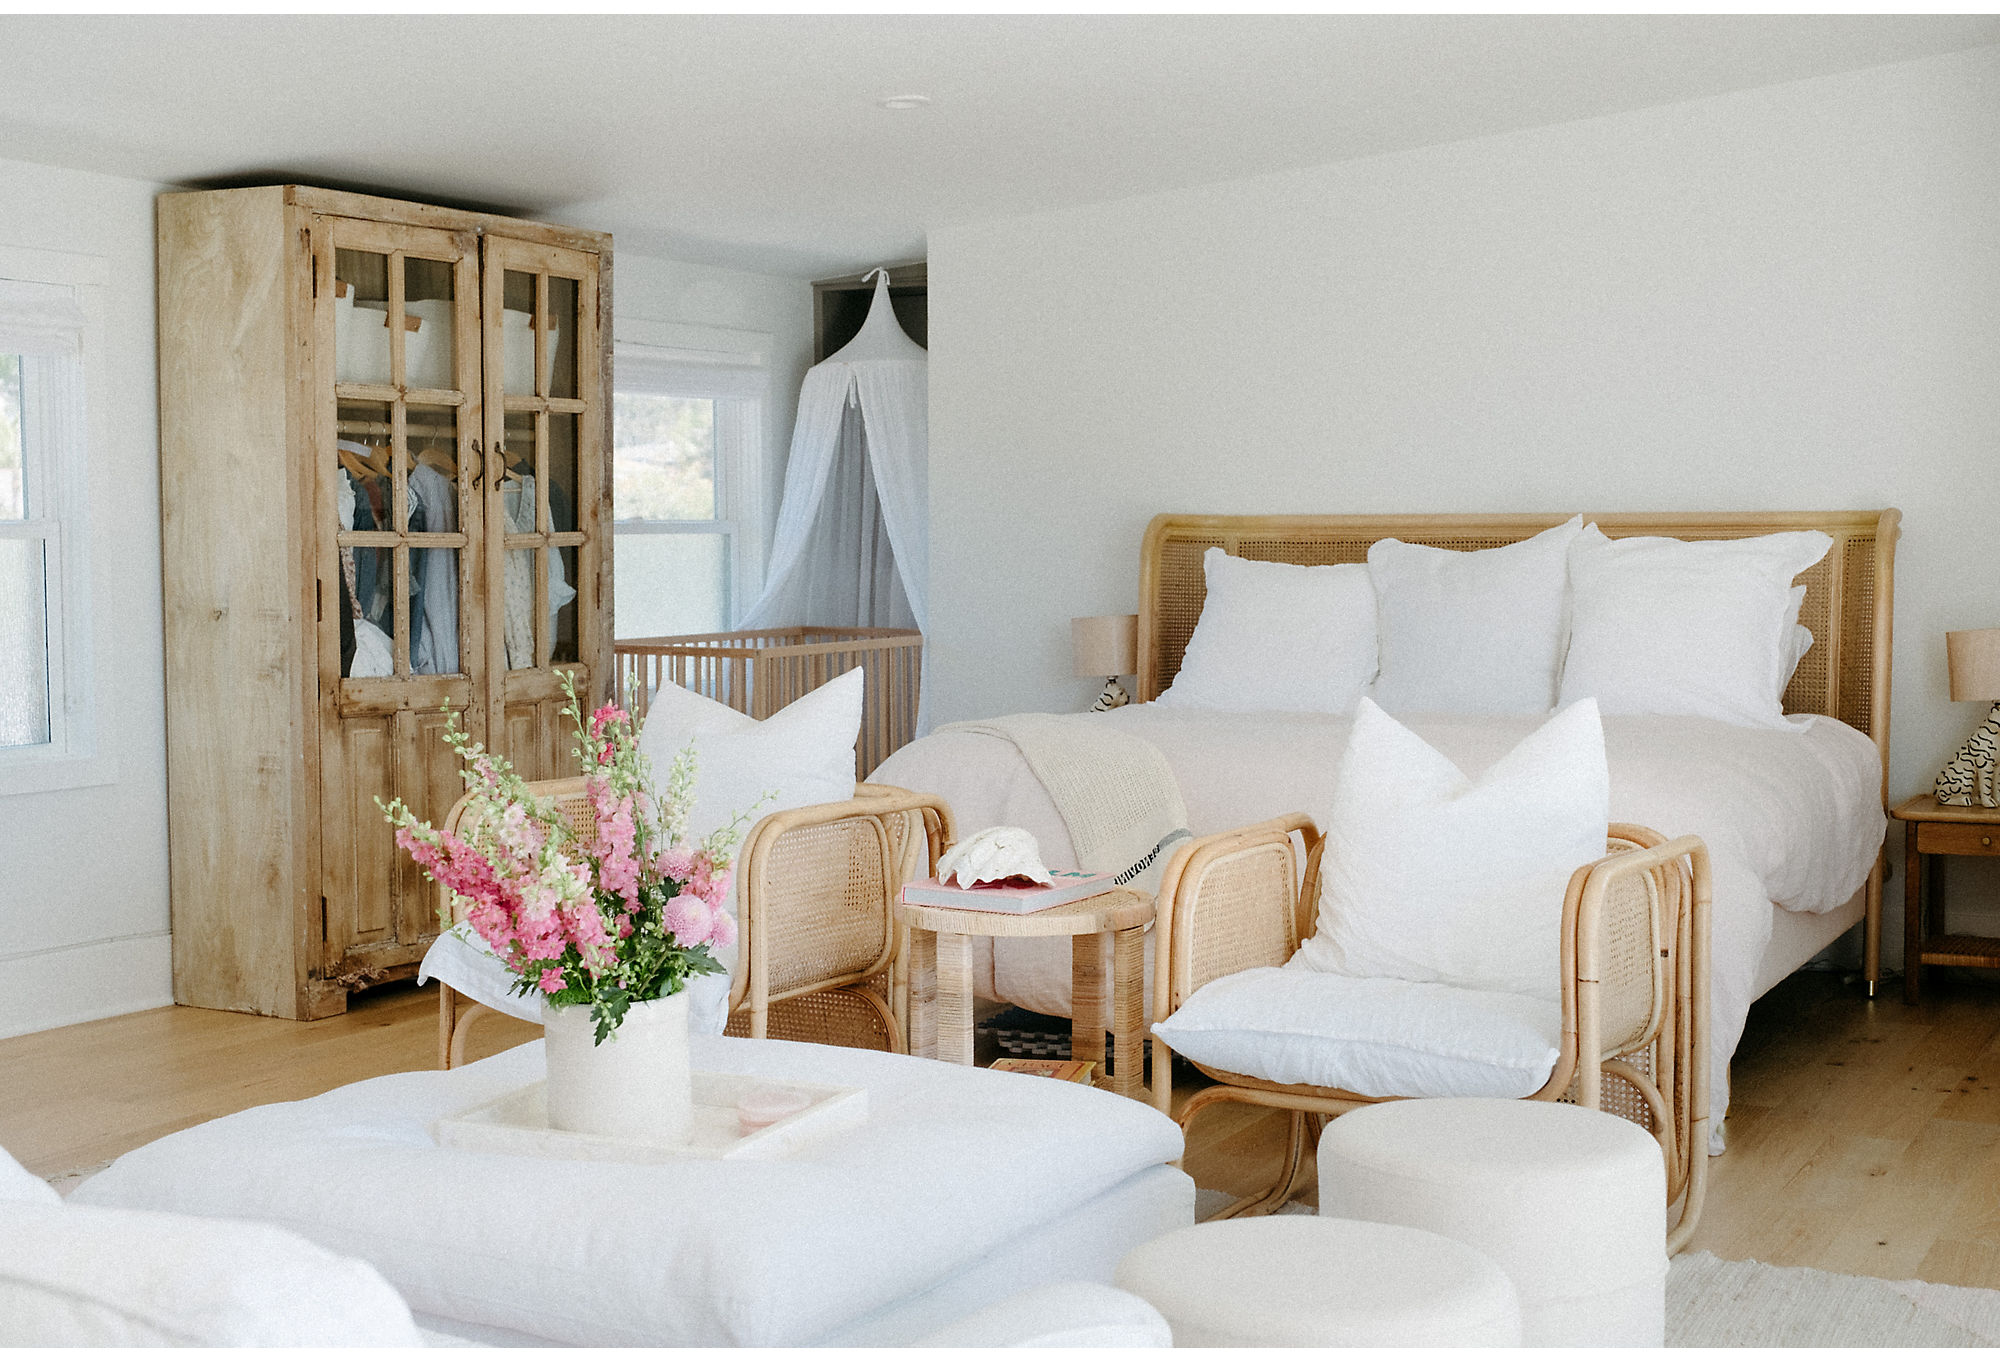 Creamy whites create a calming atmosphere in the upstairs of the Beach House.